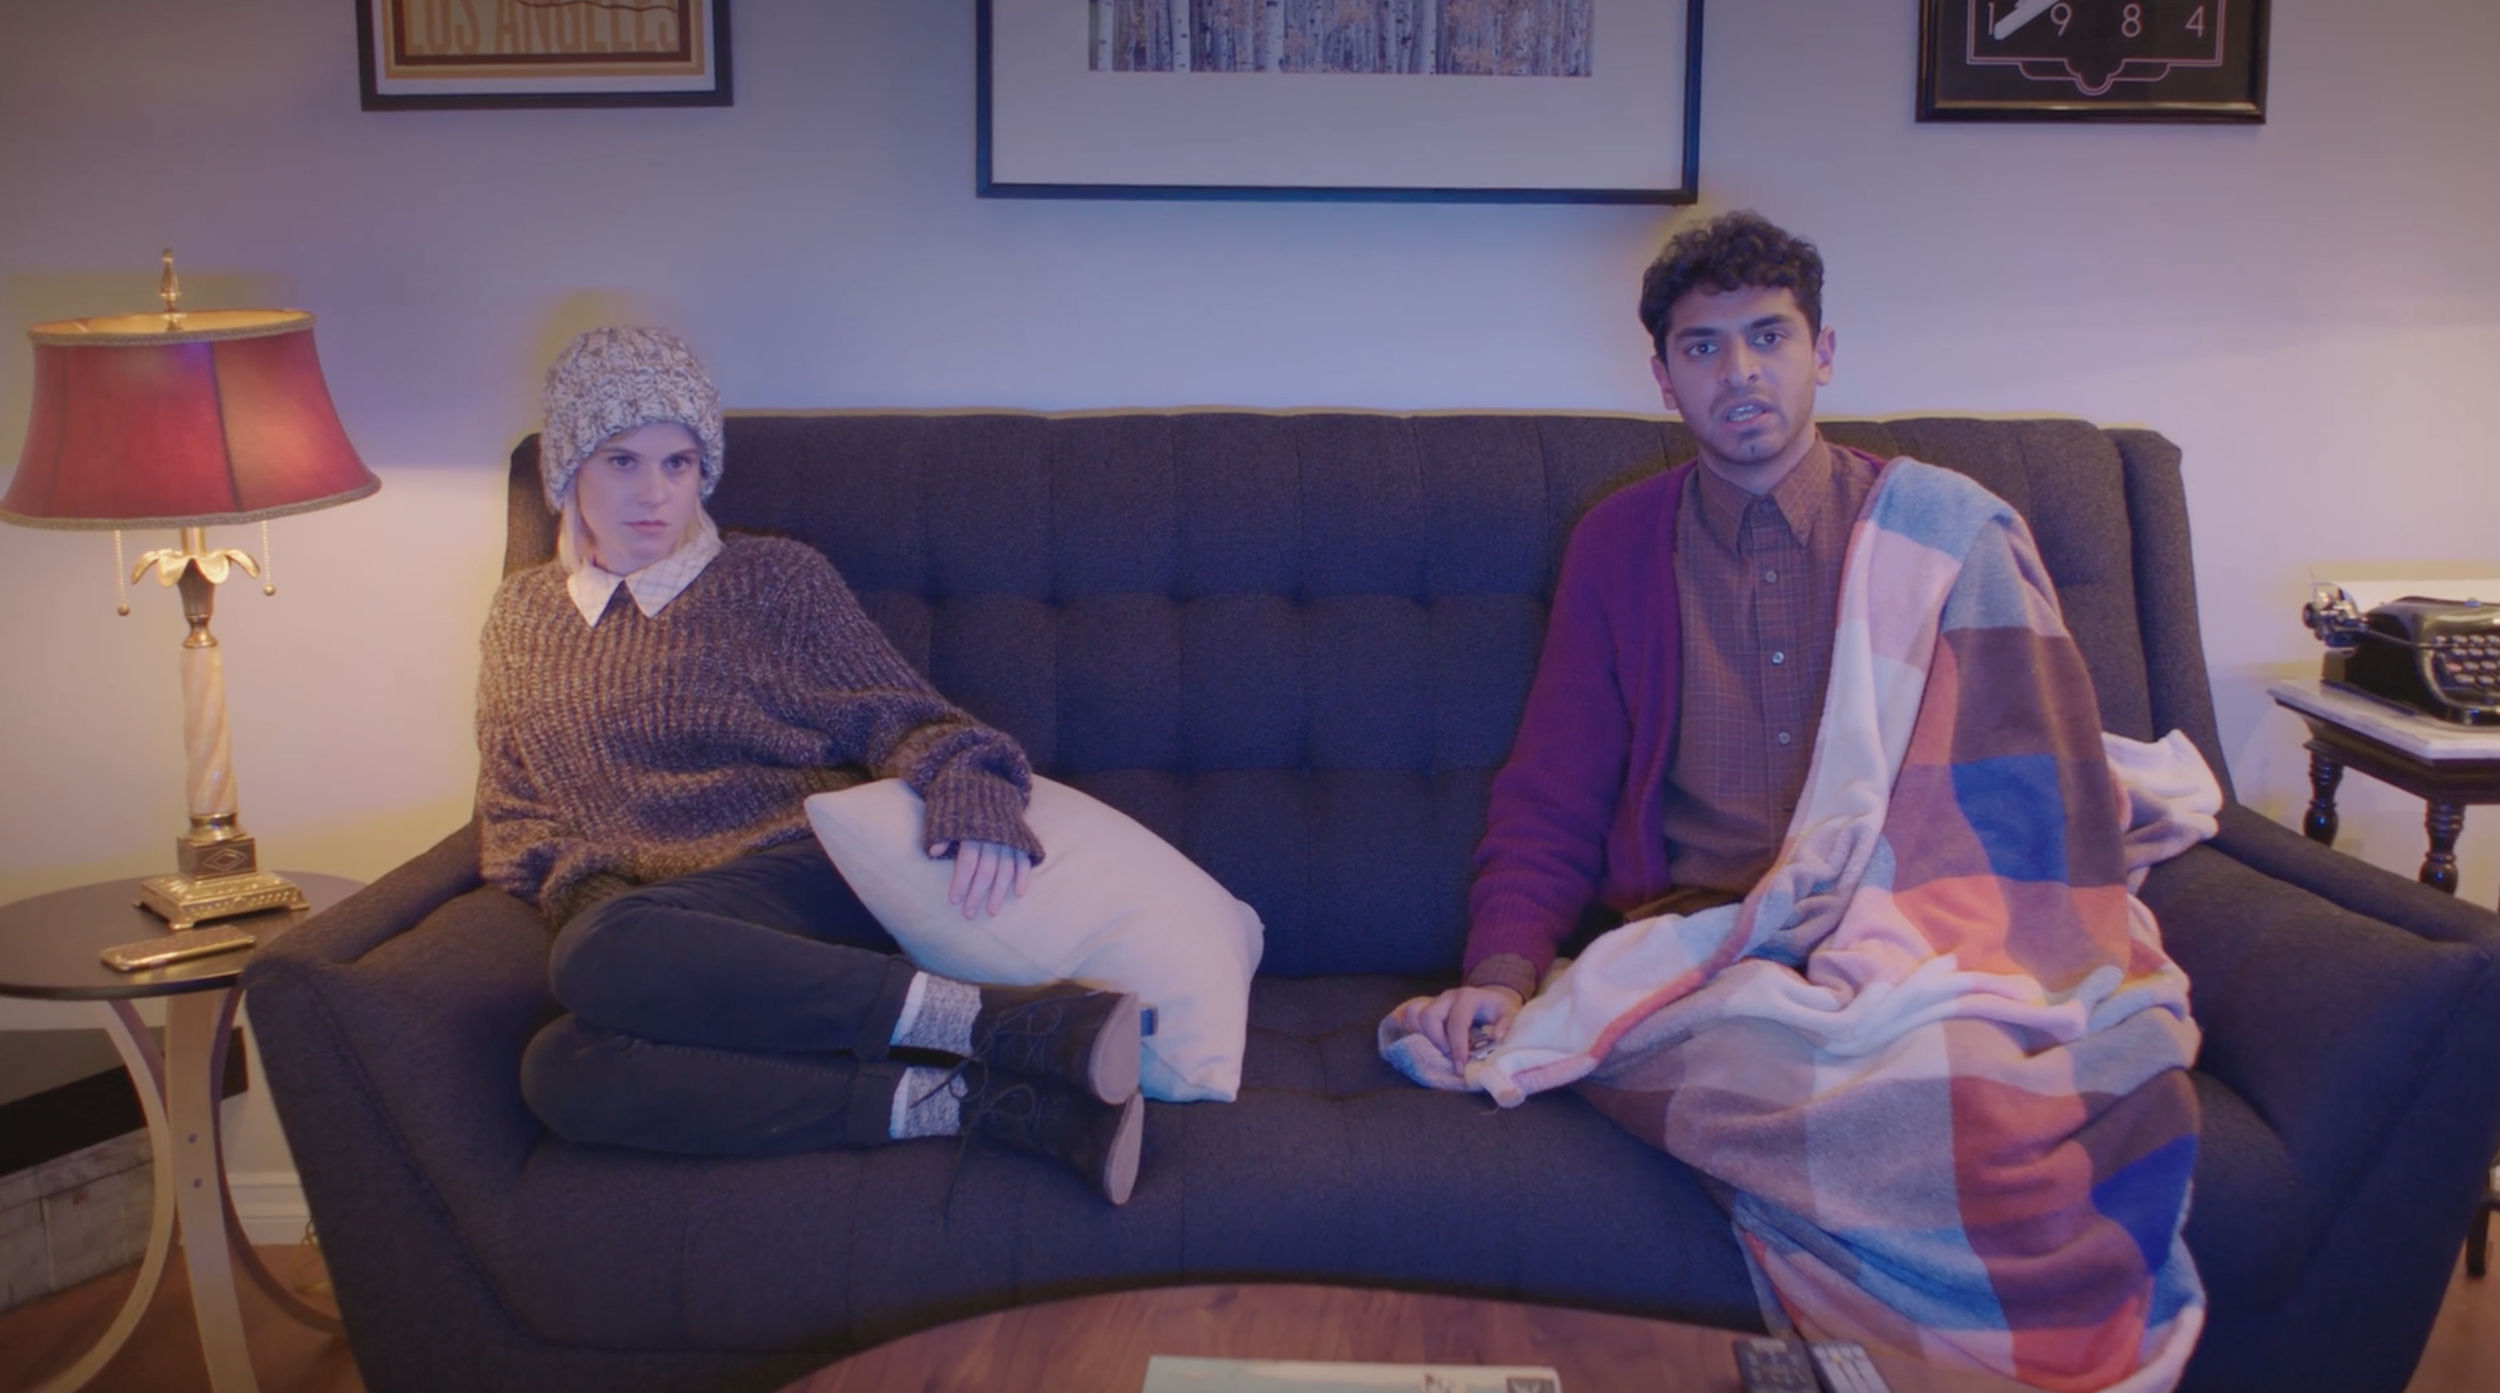 Kate (Carlie Craig) and Bill (Karan Soni) binge their favorite new show Mysterious Artifacts